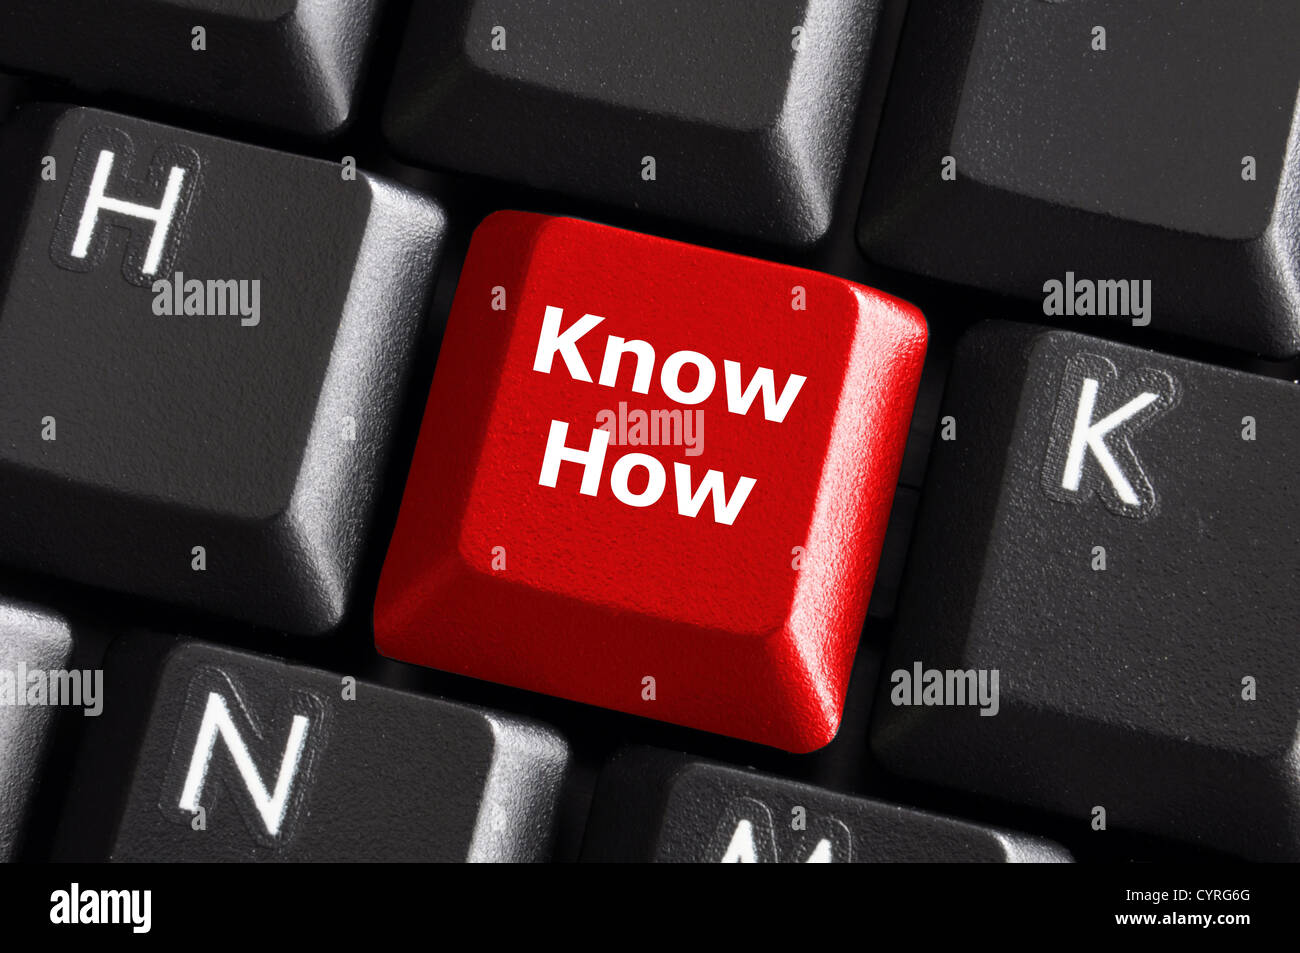 know how knowledge or education concept with red button on computer keyboard - Stock Image